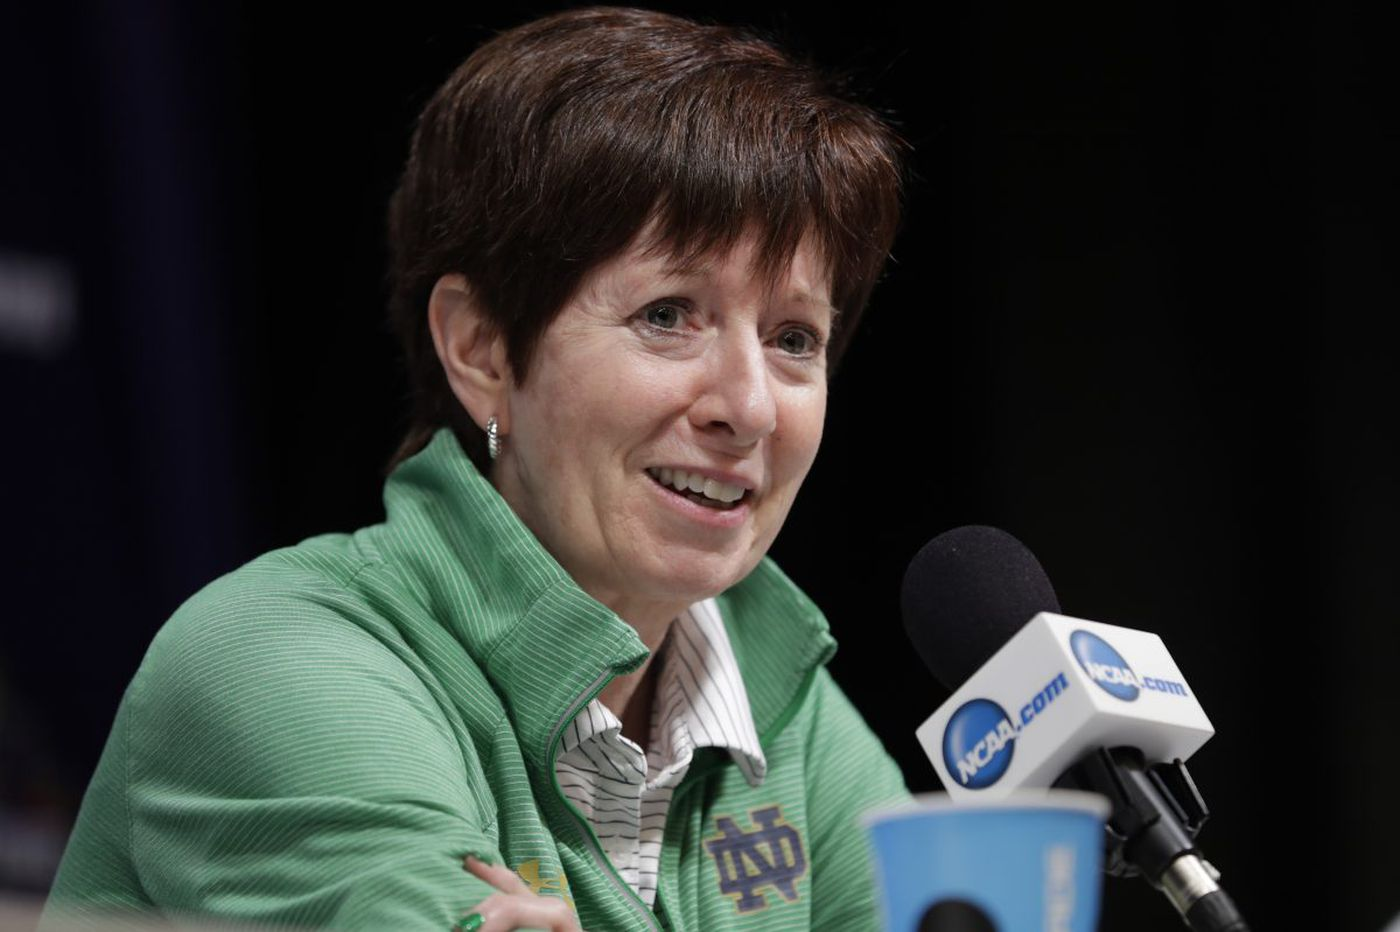 Coach Muffet McGraw, a St. Joseph's graduate, guides Notre Dame to a stunning upset of Connecticut and a berth in the NCAA final